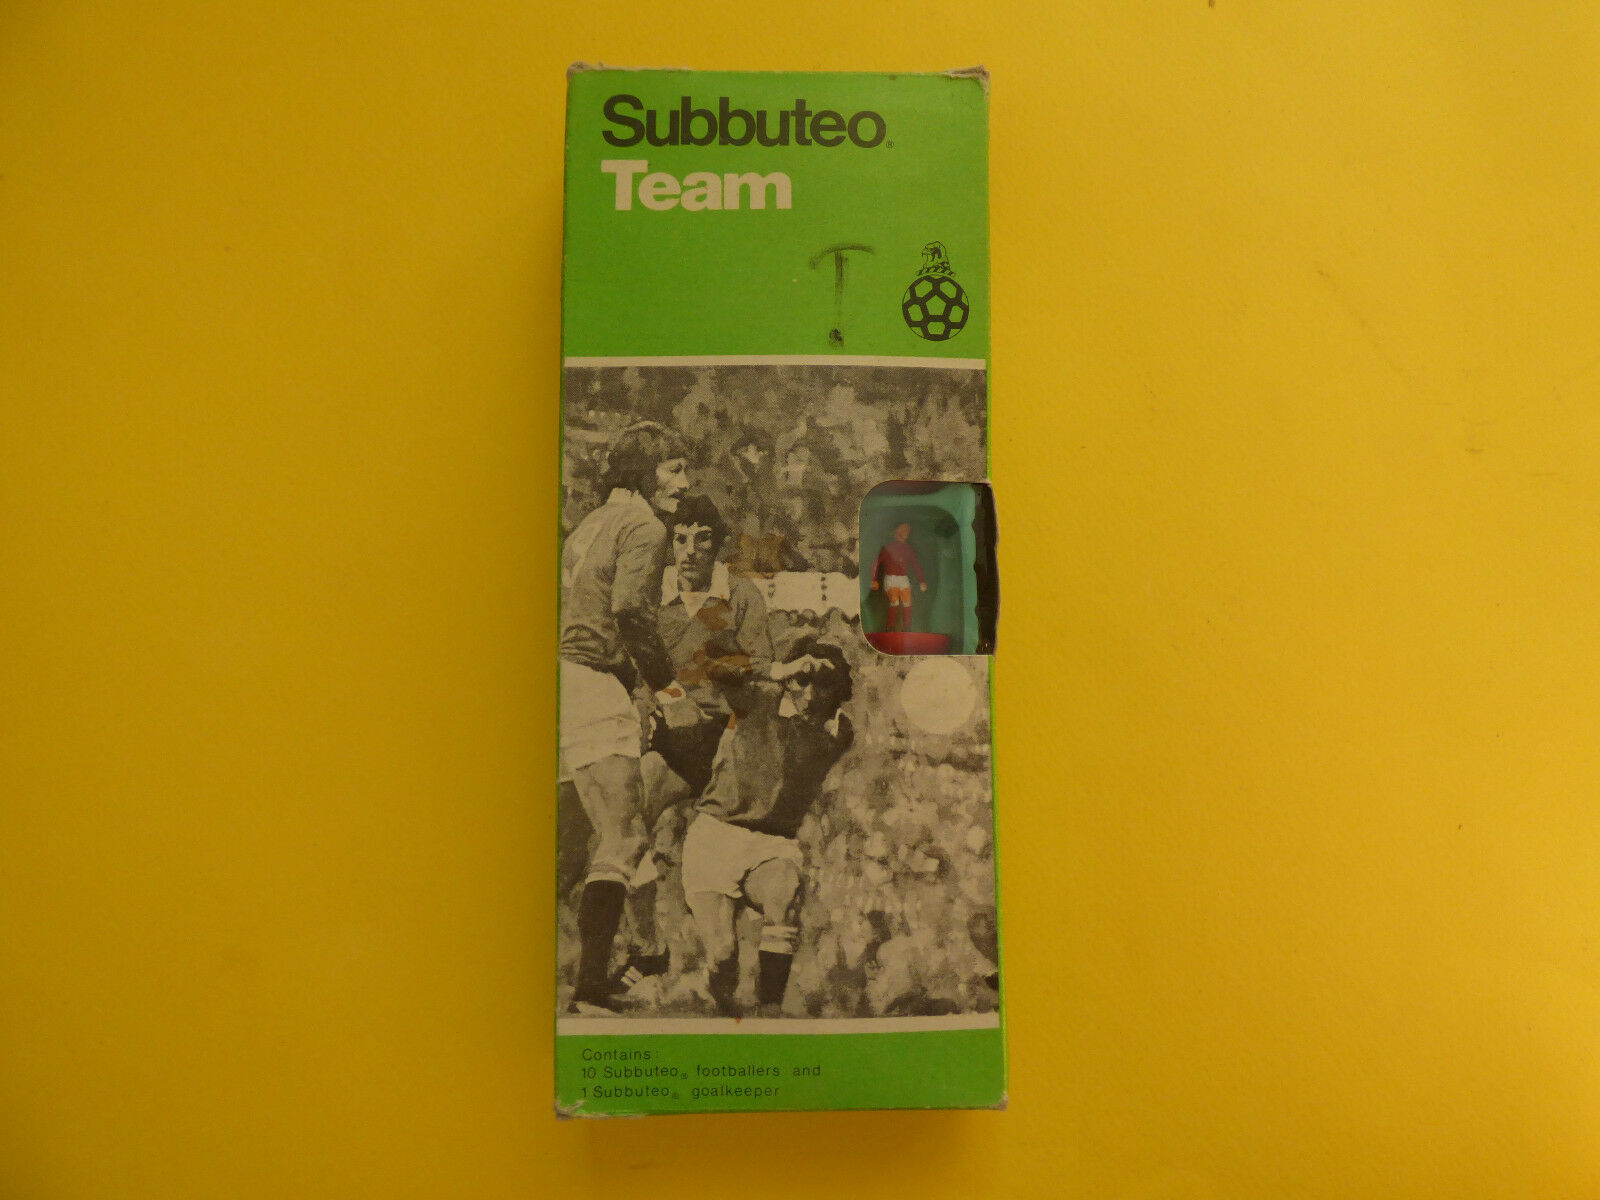 Jahrgang subbuteo ref 41 liverpool-scunthorpe stirling - team selten